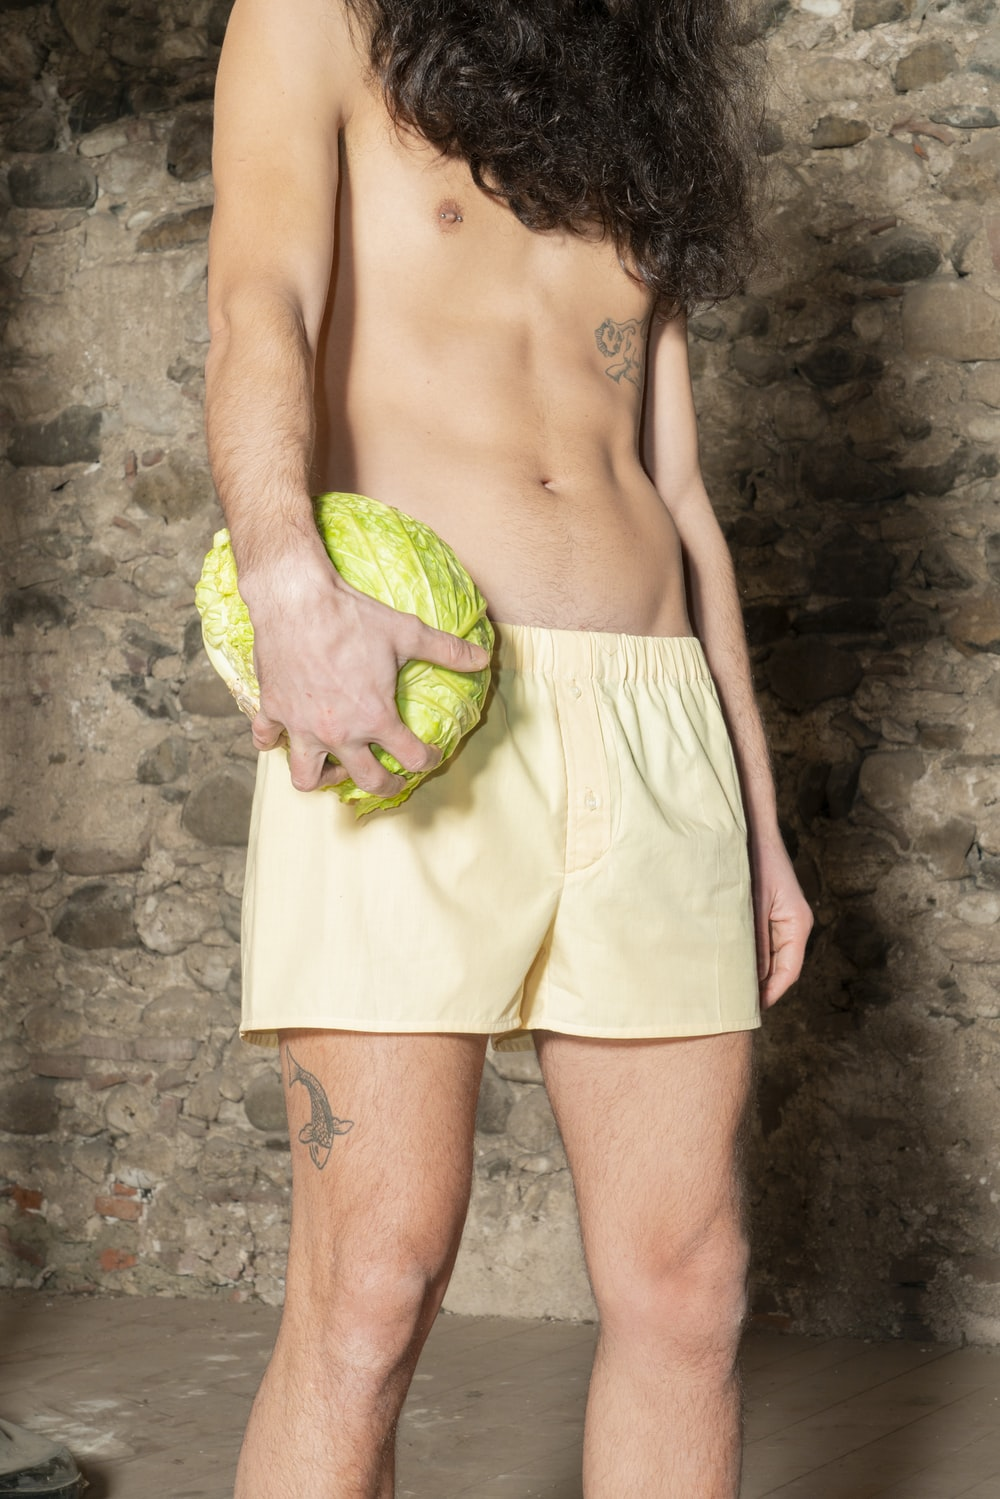 topless man in white shorts holding green textile